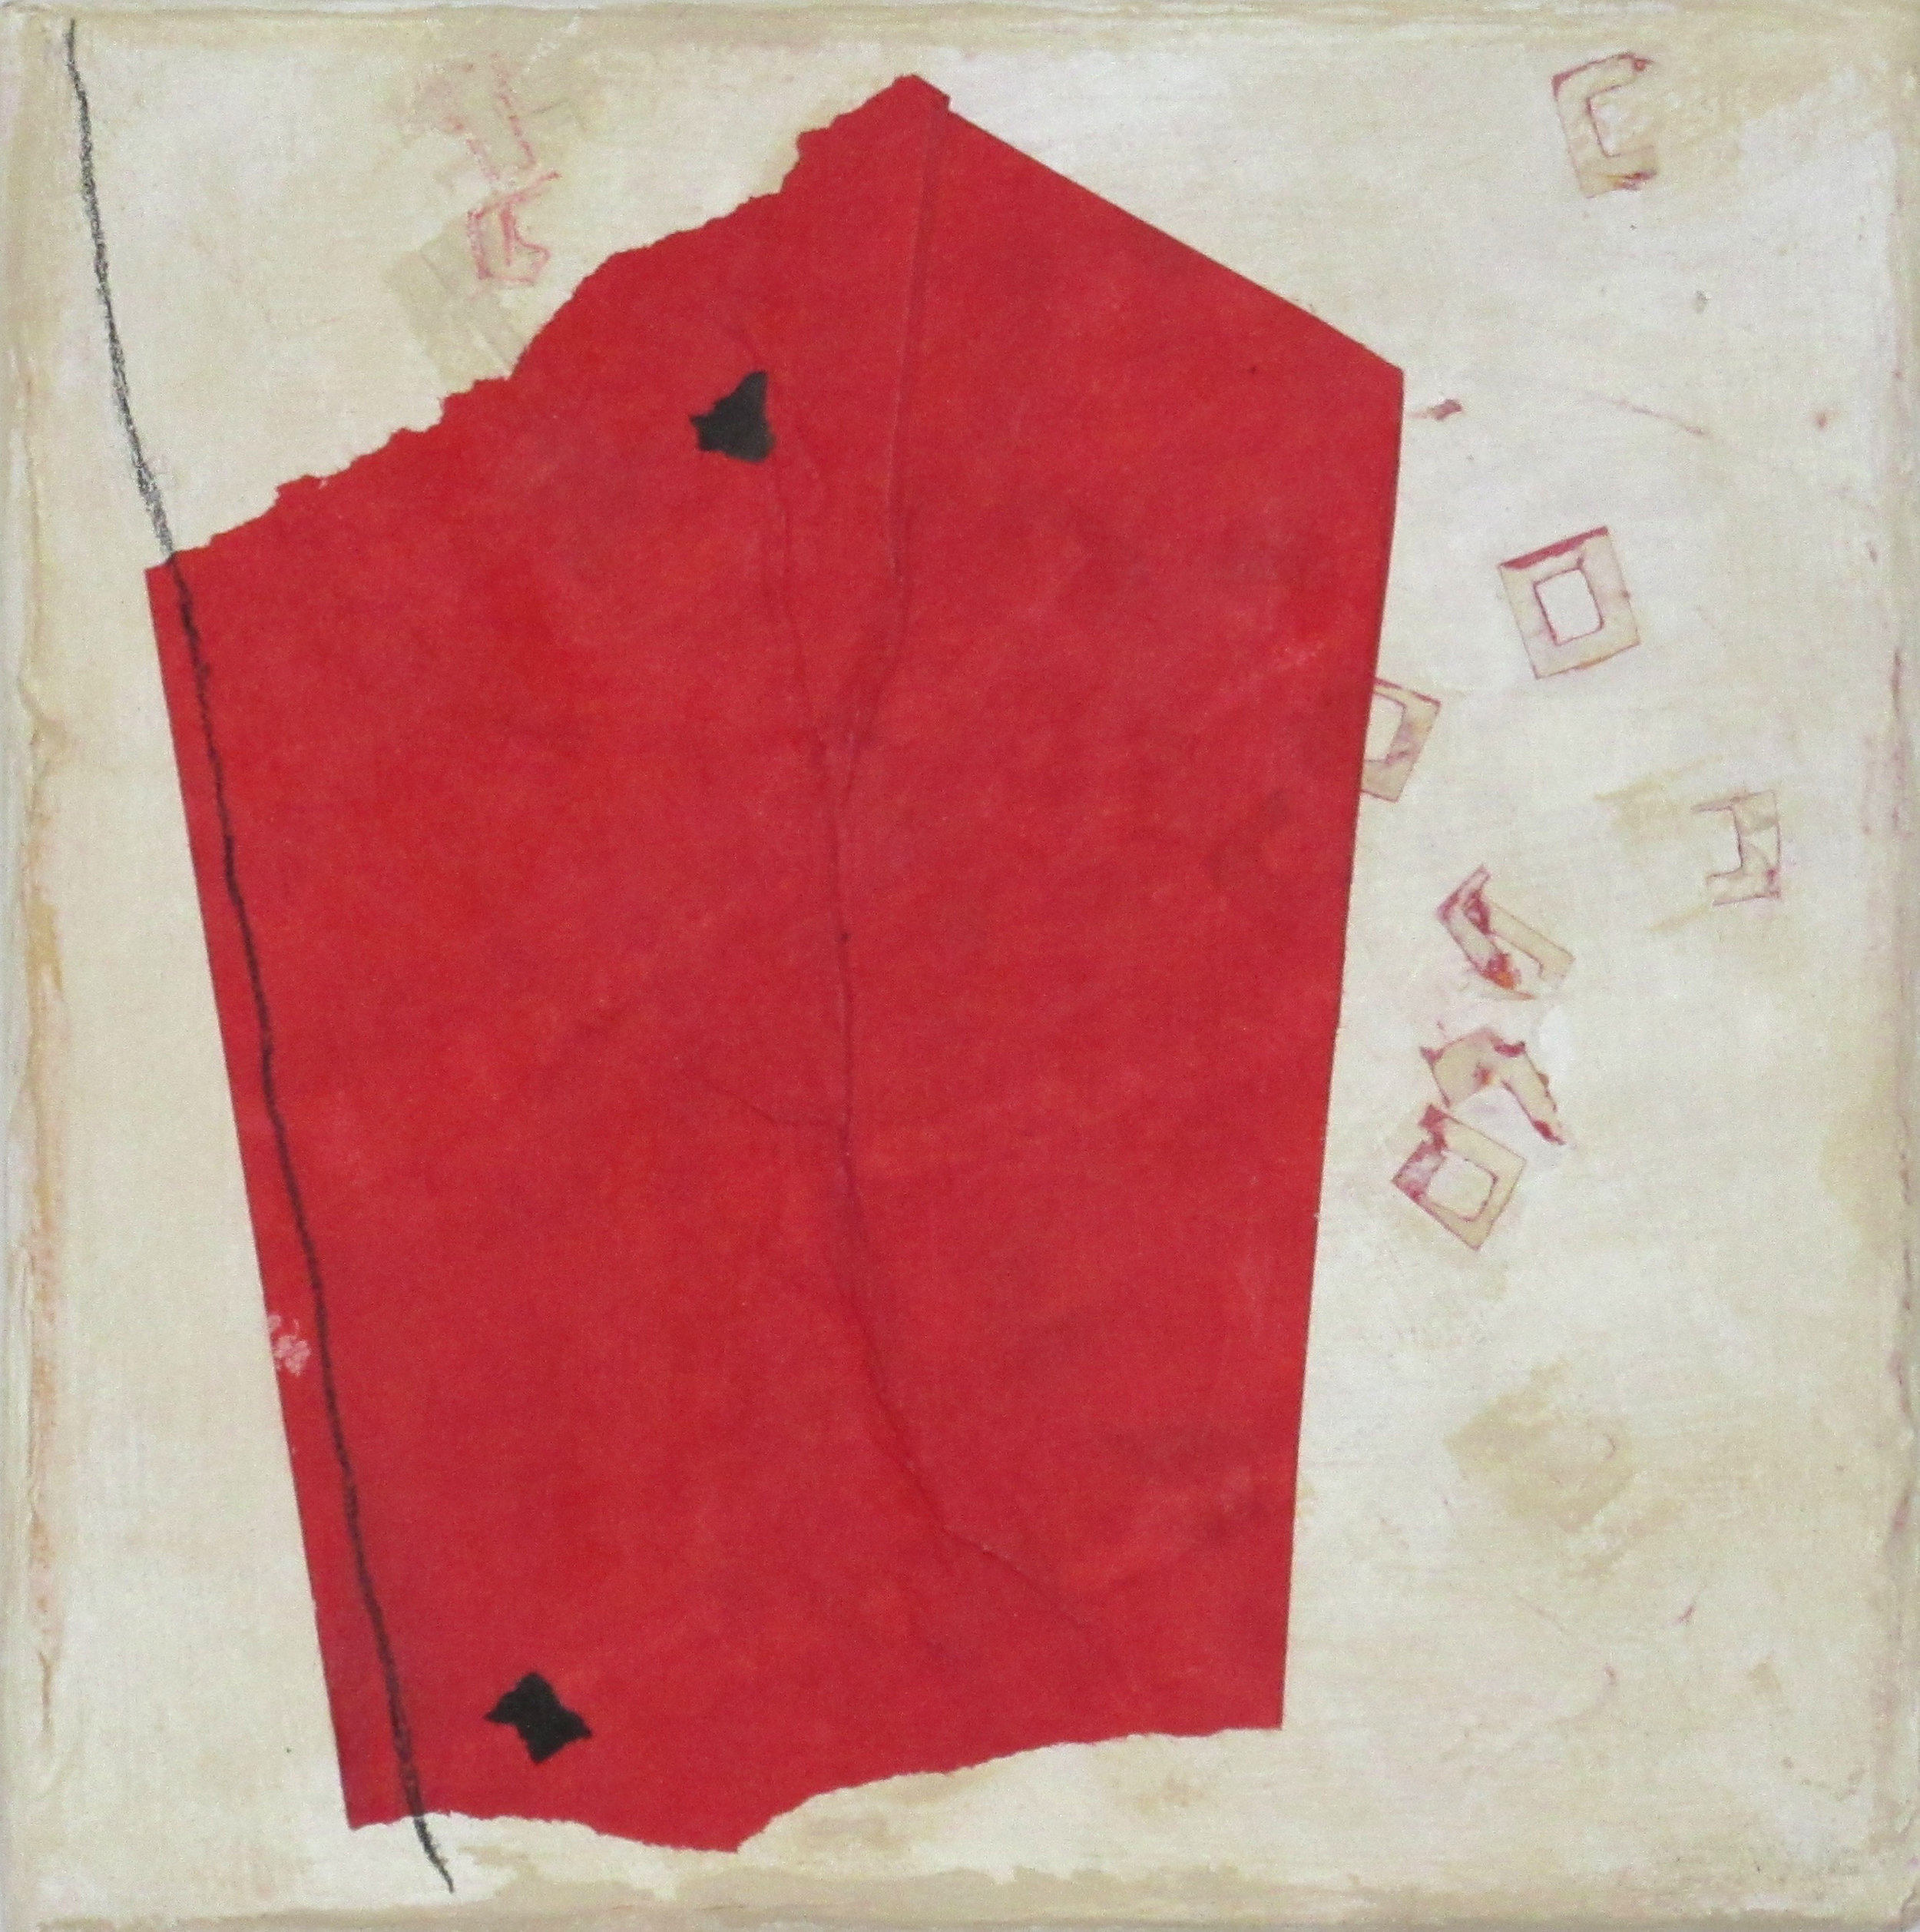 Buff with Red Form and Line, 2016, mixed media on canvas, 6 x 6 in, SOLD